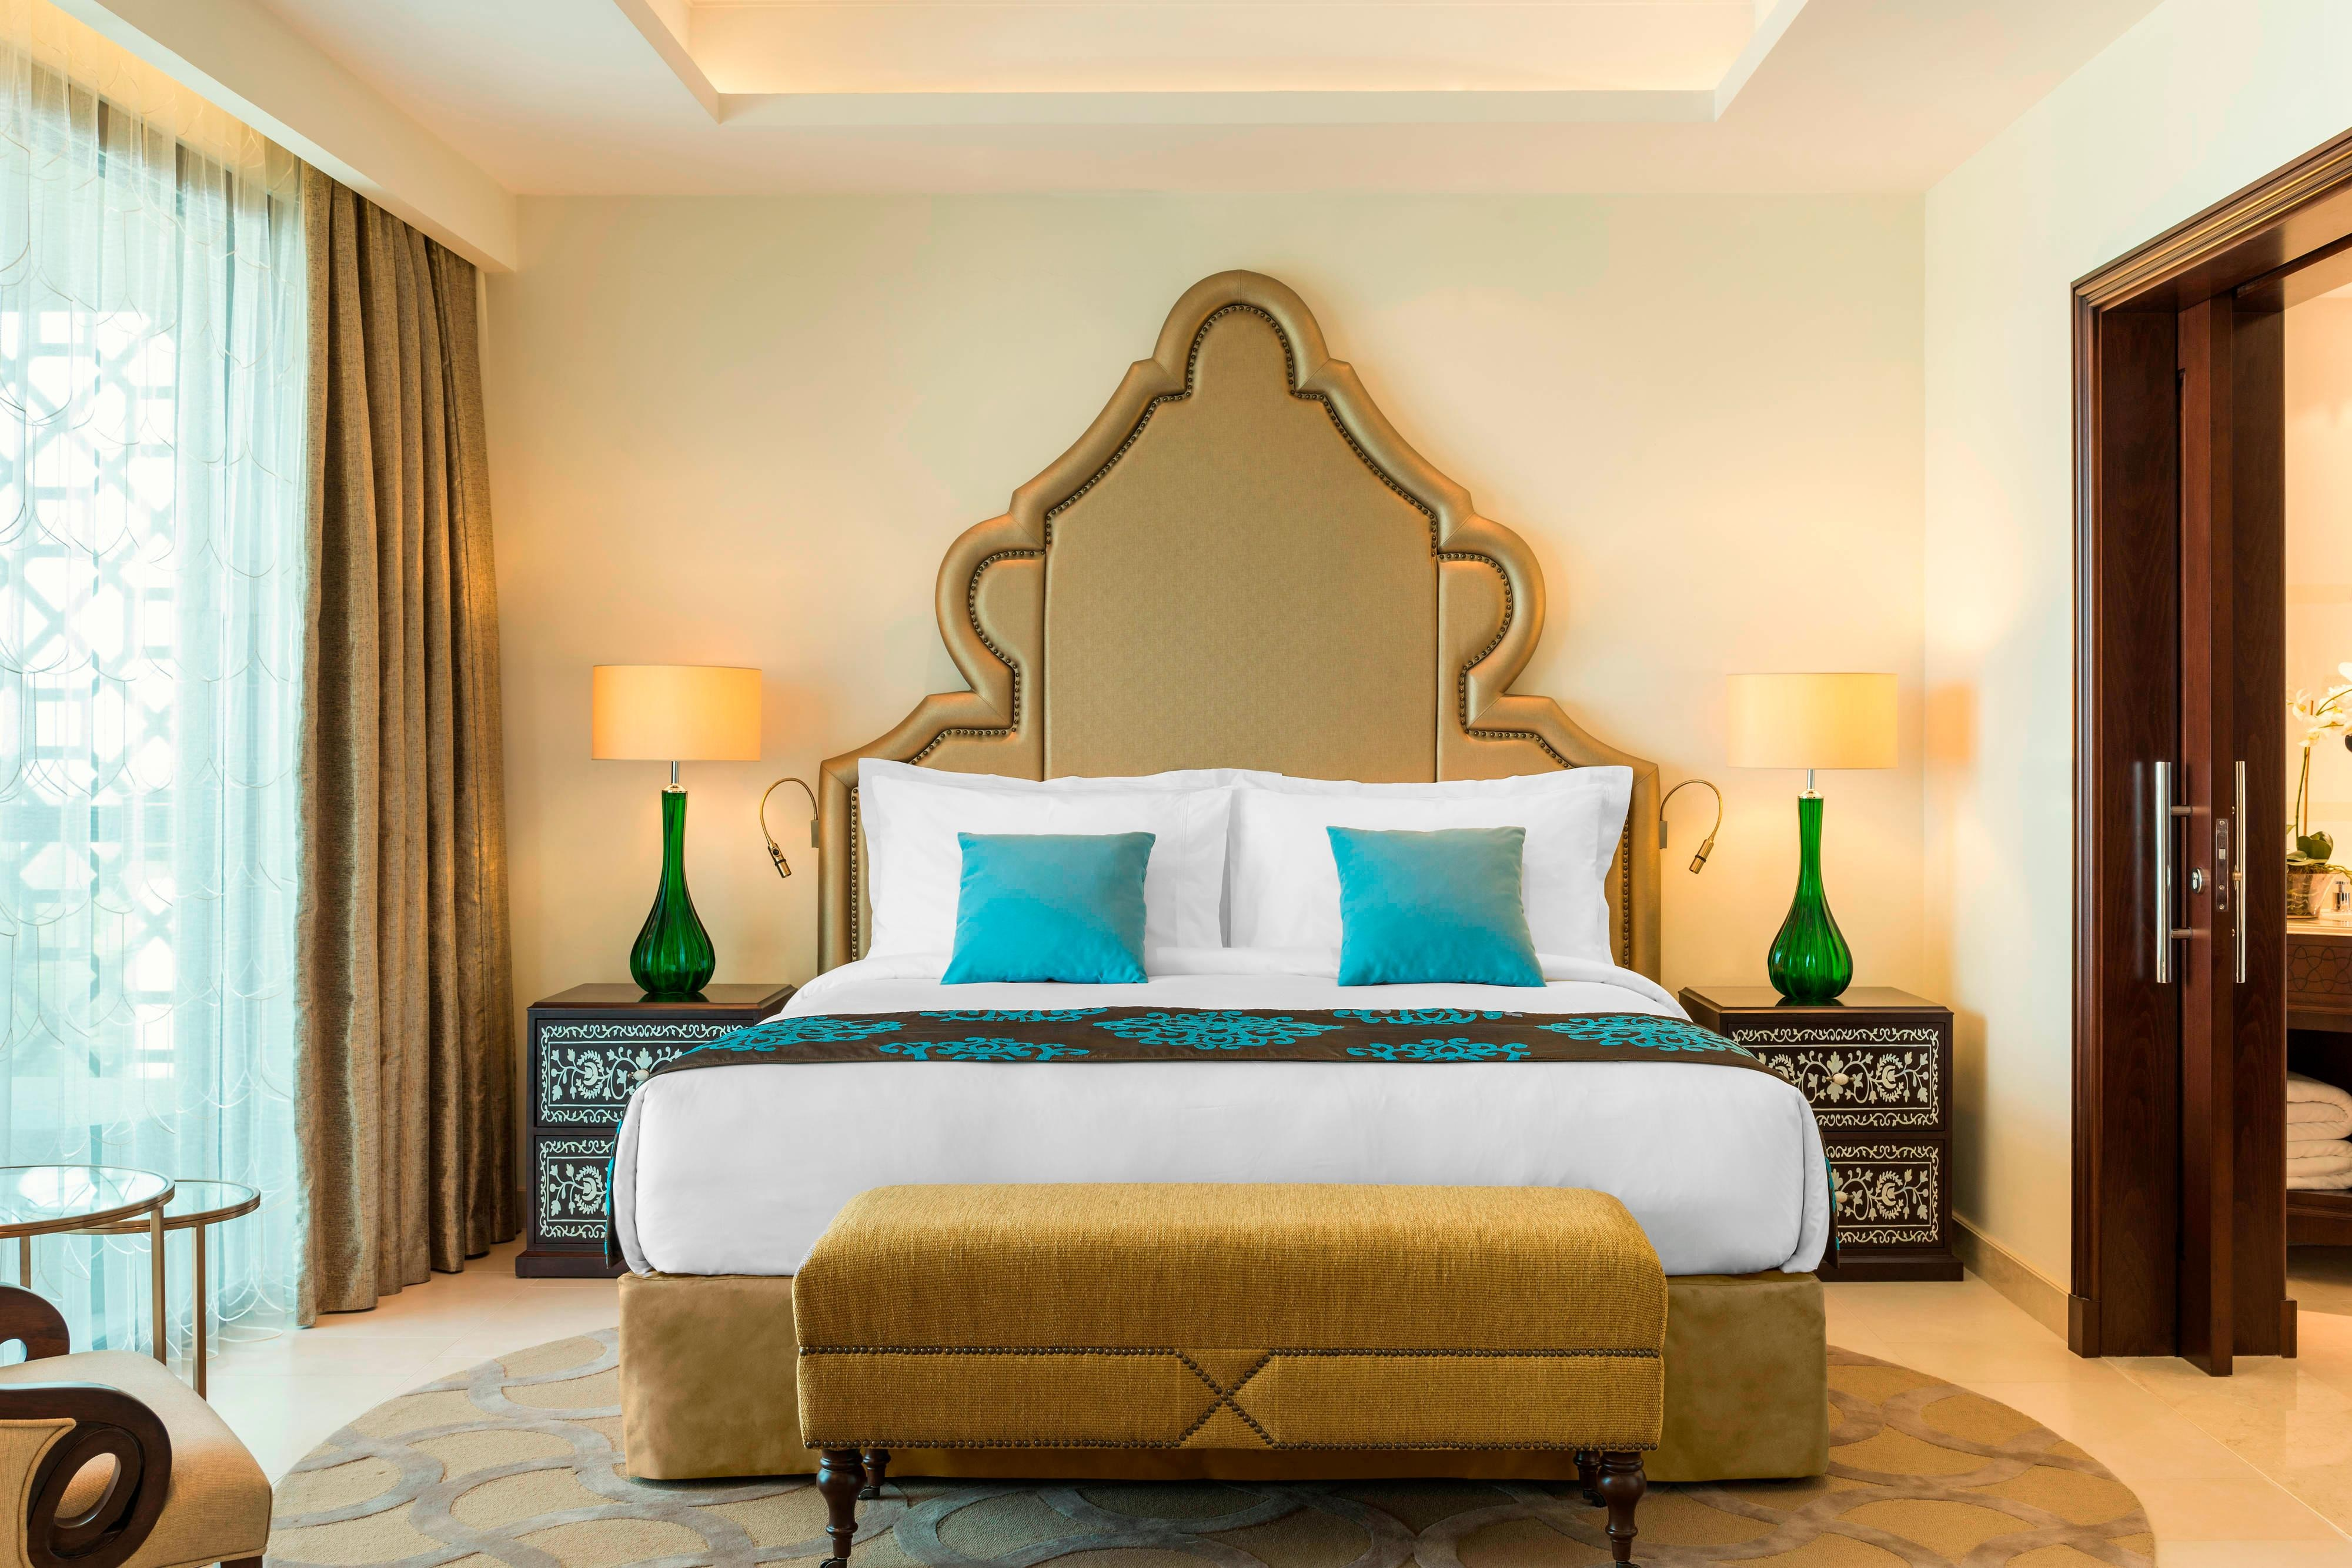 Al Dana Suite - Bedroom